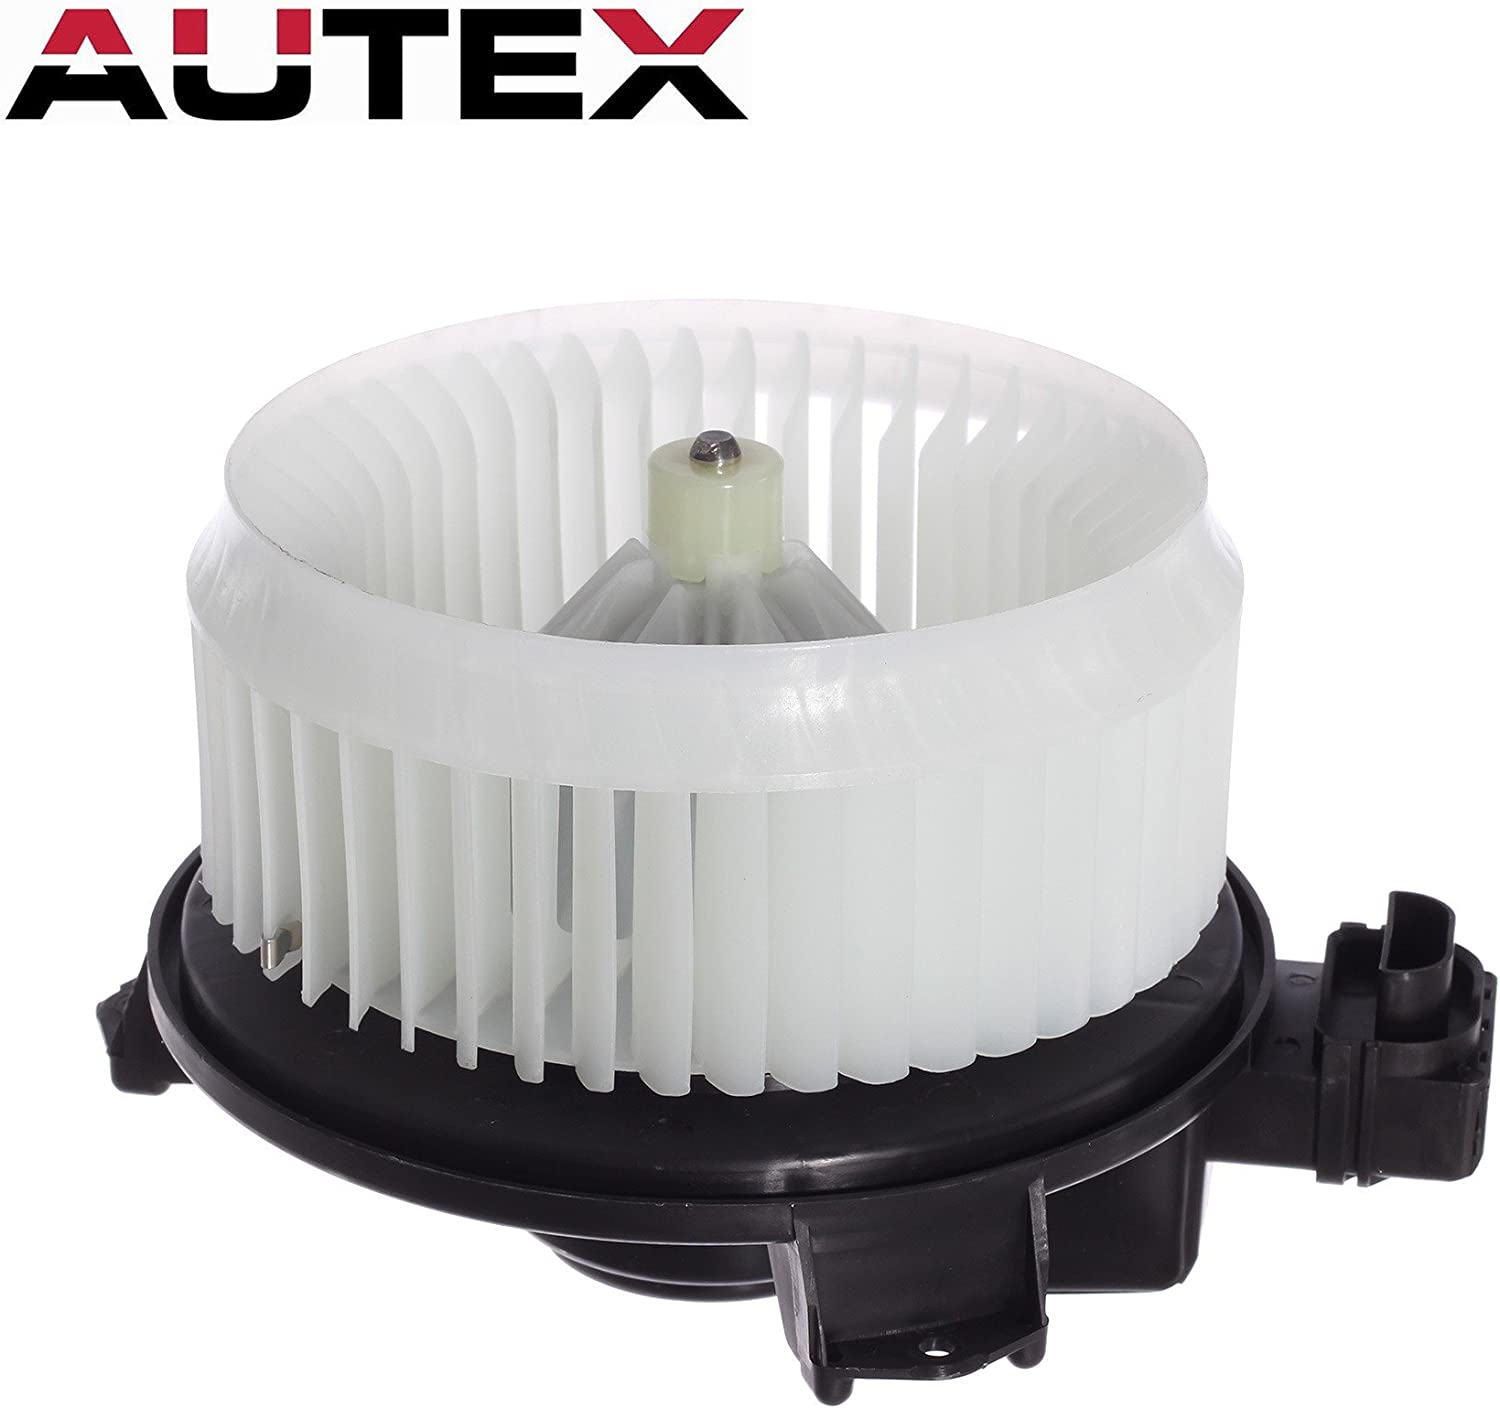 AUTEX HVAC Blower Motor Assembly Compatible with Acura MDX RDX TL TSX,Buick Lucerne,Cadillac DTS,Dodge Avenger Caliber,Ford Edge Fusion,Honda Accord CRV 2007-2014 Blower Motor 700203